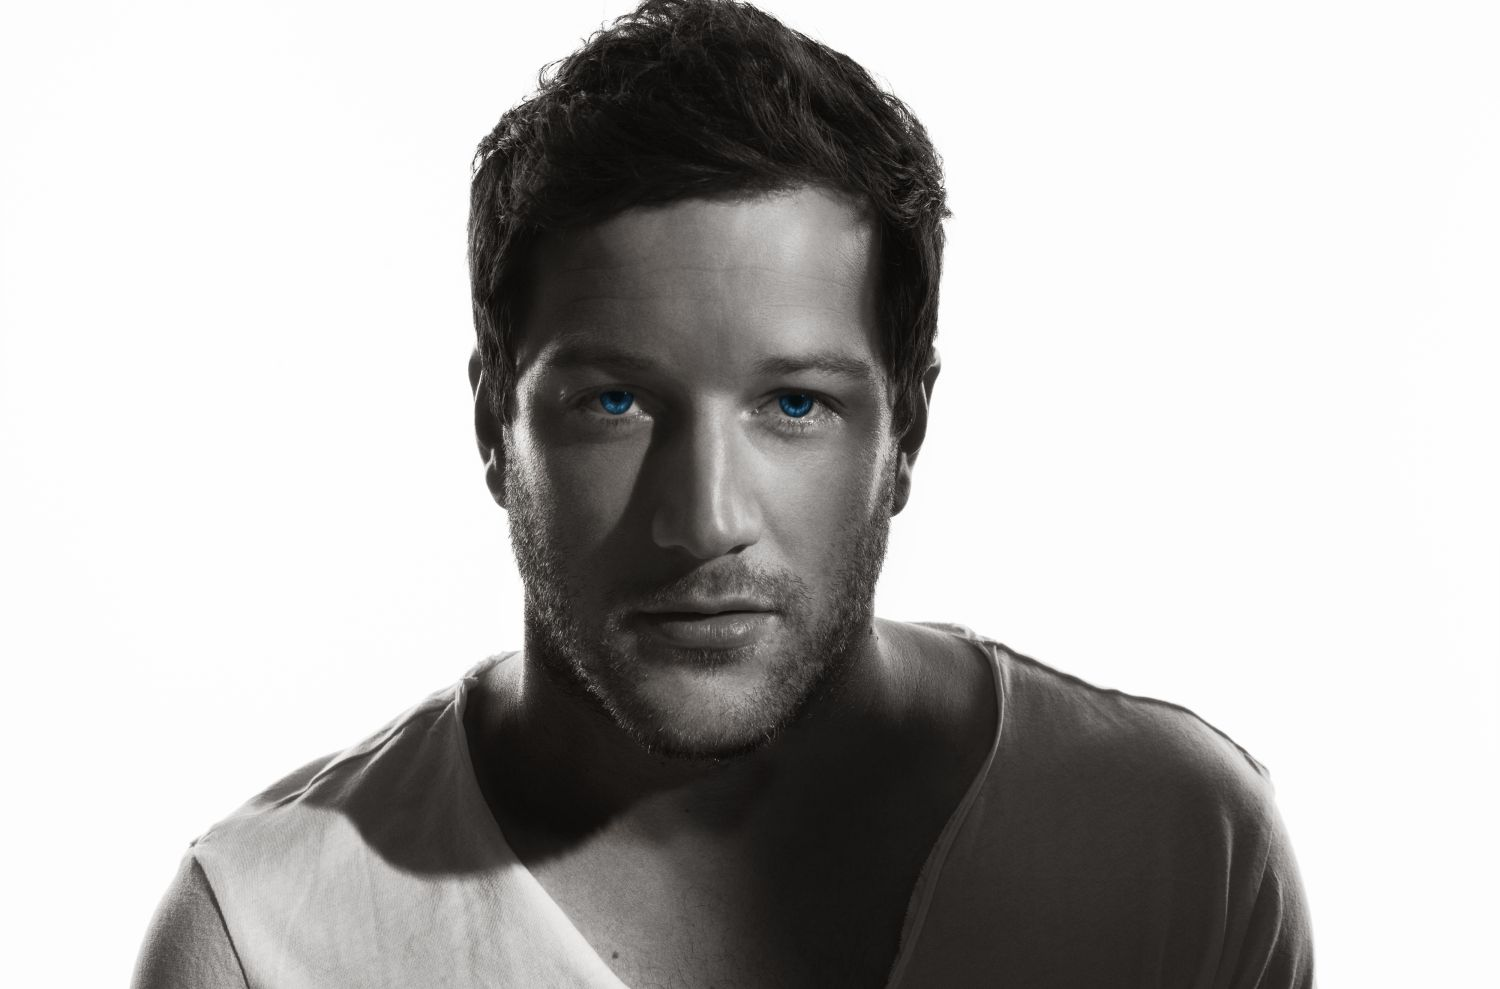 MATT CARDLE: The FULL Mercury interview